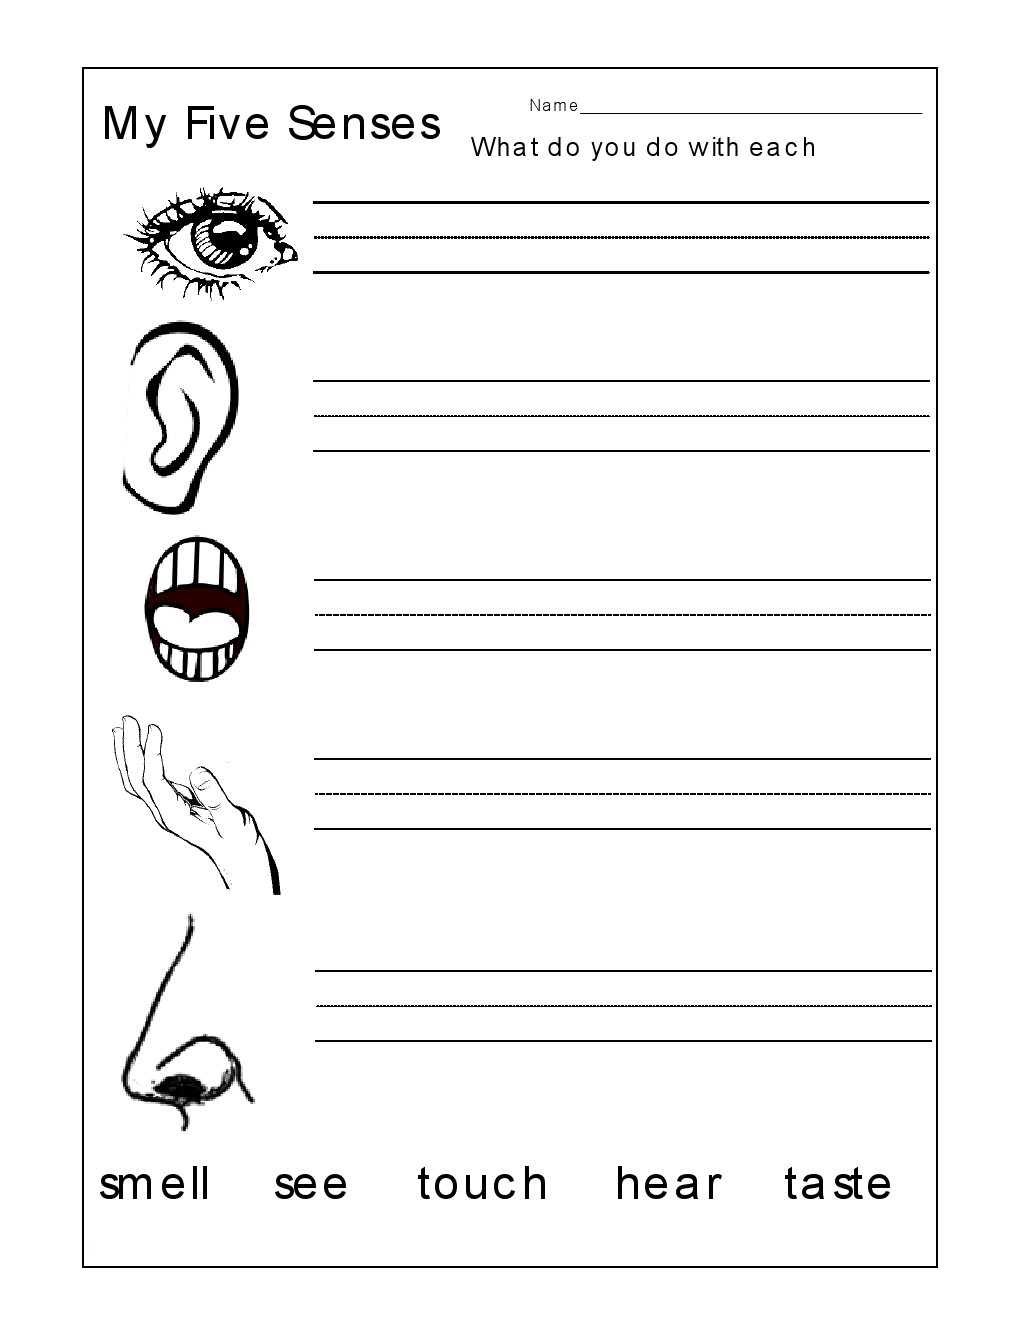 Worksheets Five Senses Worksheet kindergarten worksheets the 5 senses worksheets